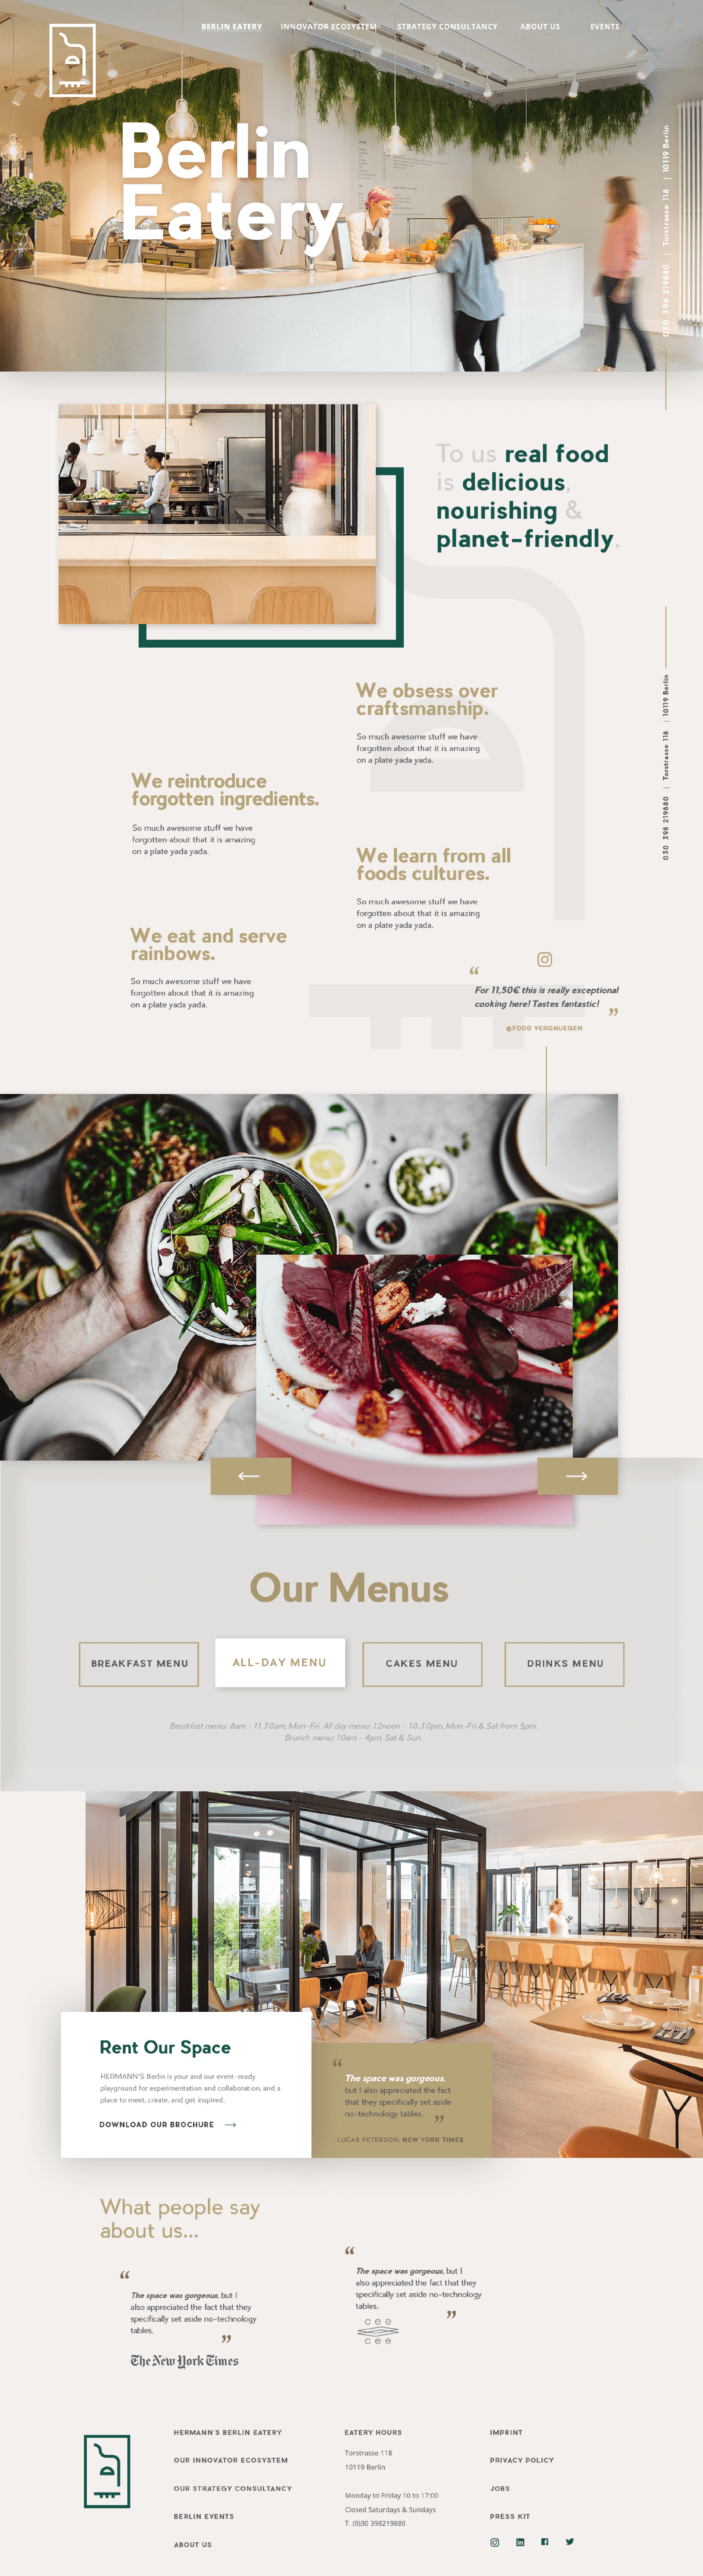 Eatery Page